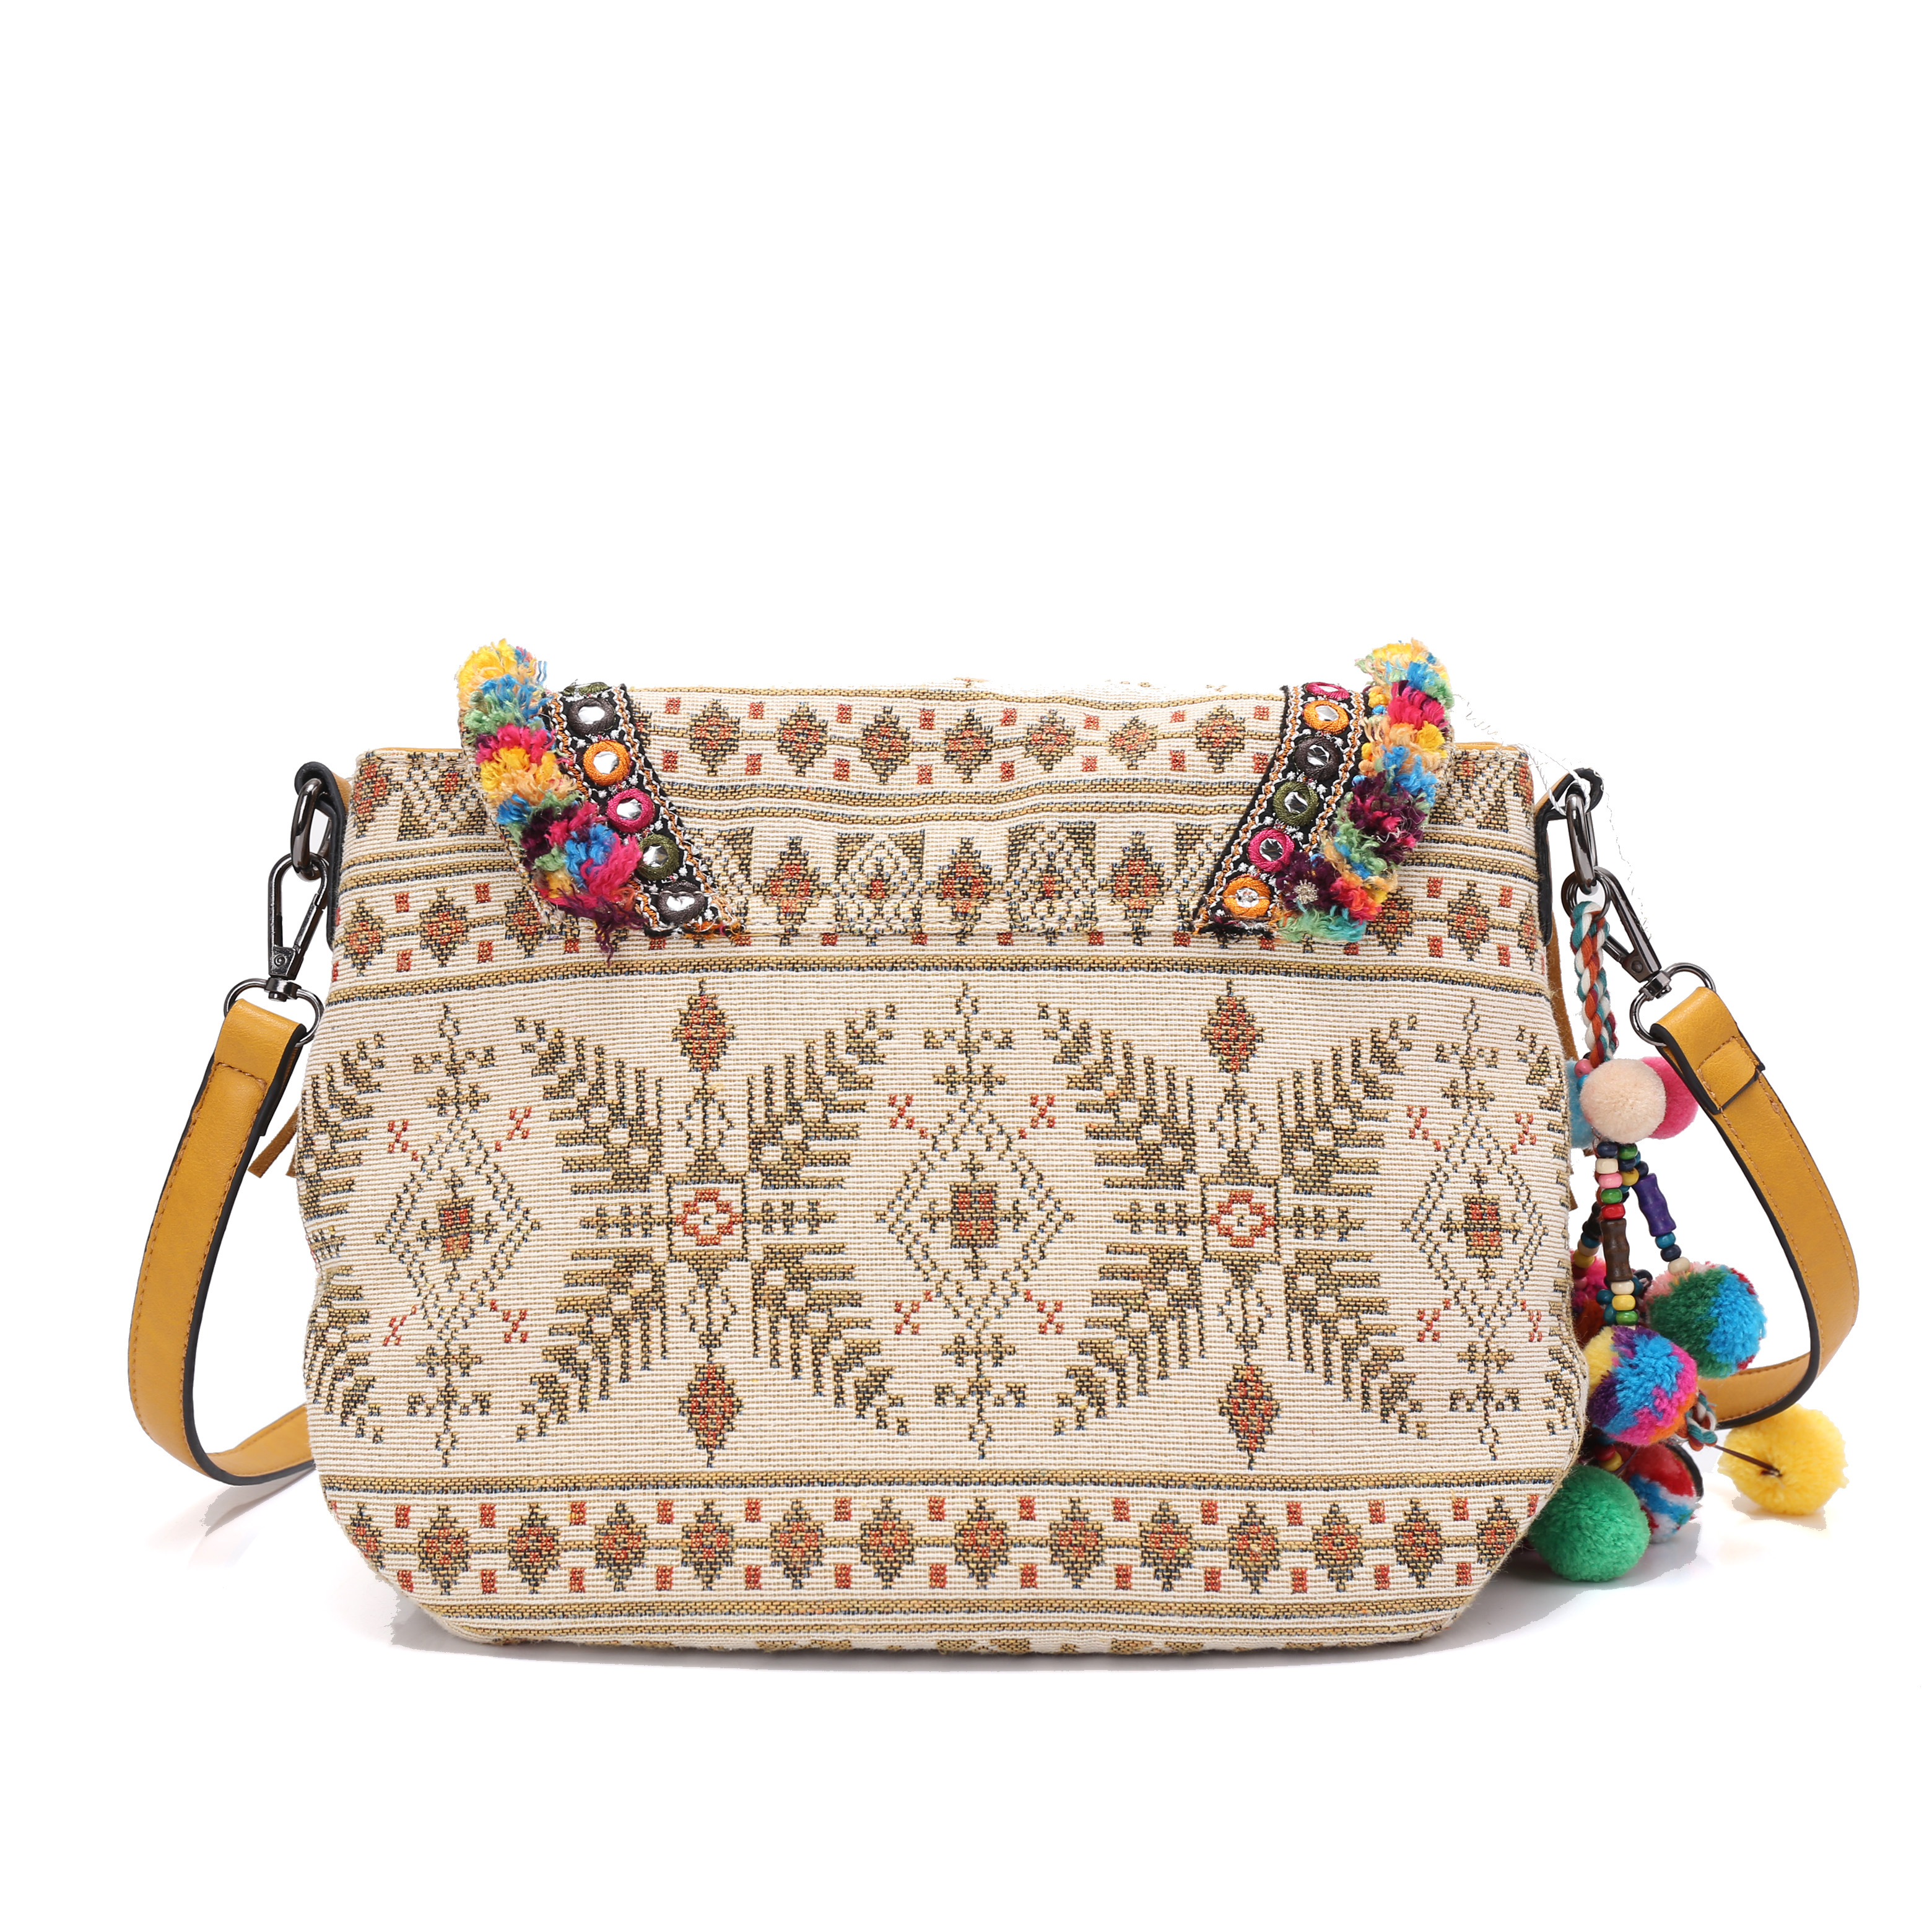 ff64c891c5e211 China Vintage Ethnic Bags And Handbags, China Vintage Ethnic Bags And  Handbags Manufacturers and Suppliers on Alibaba.com